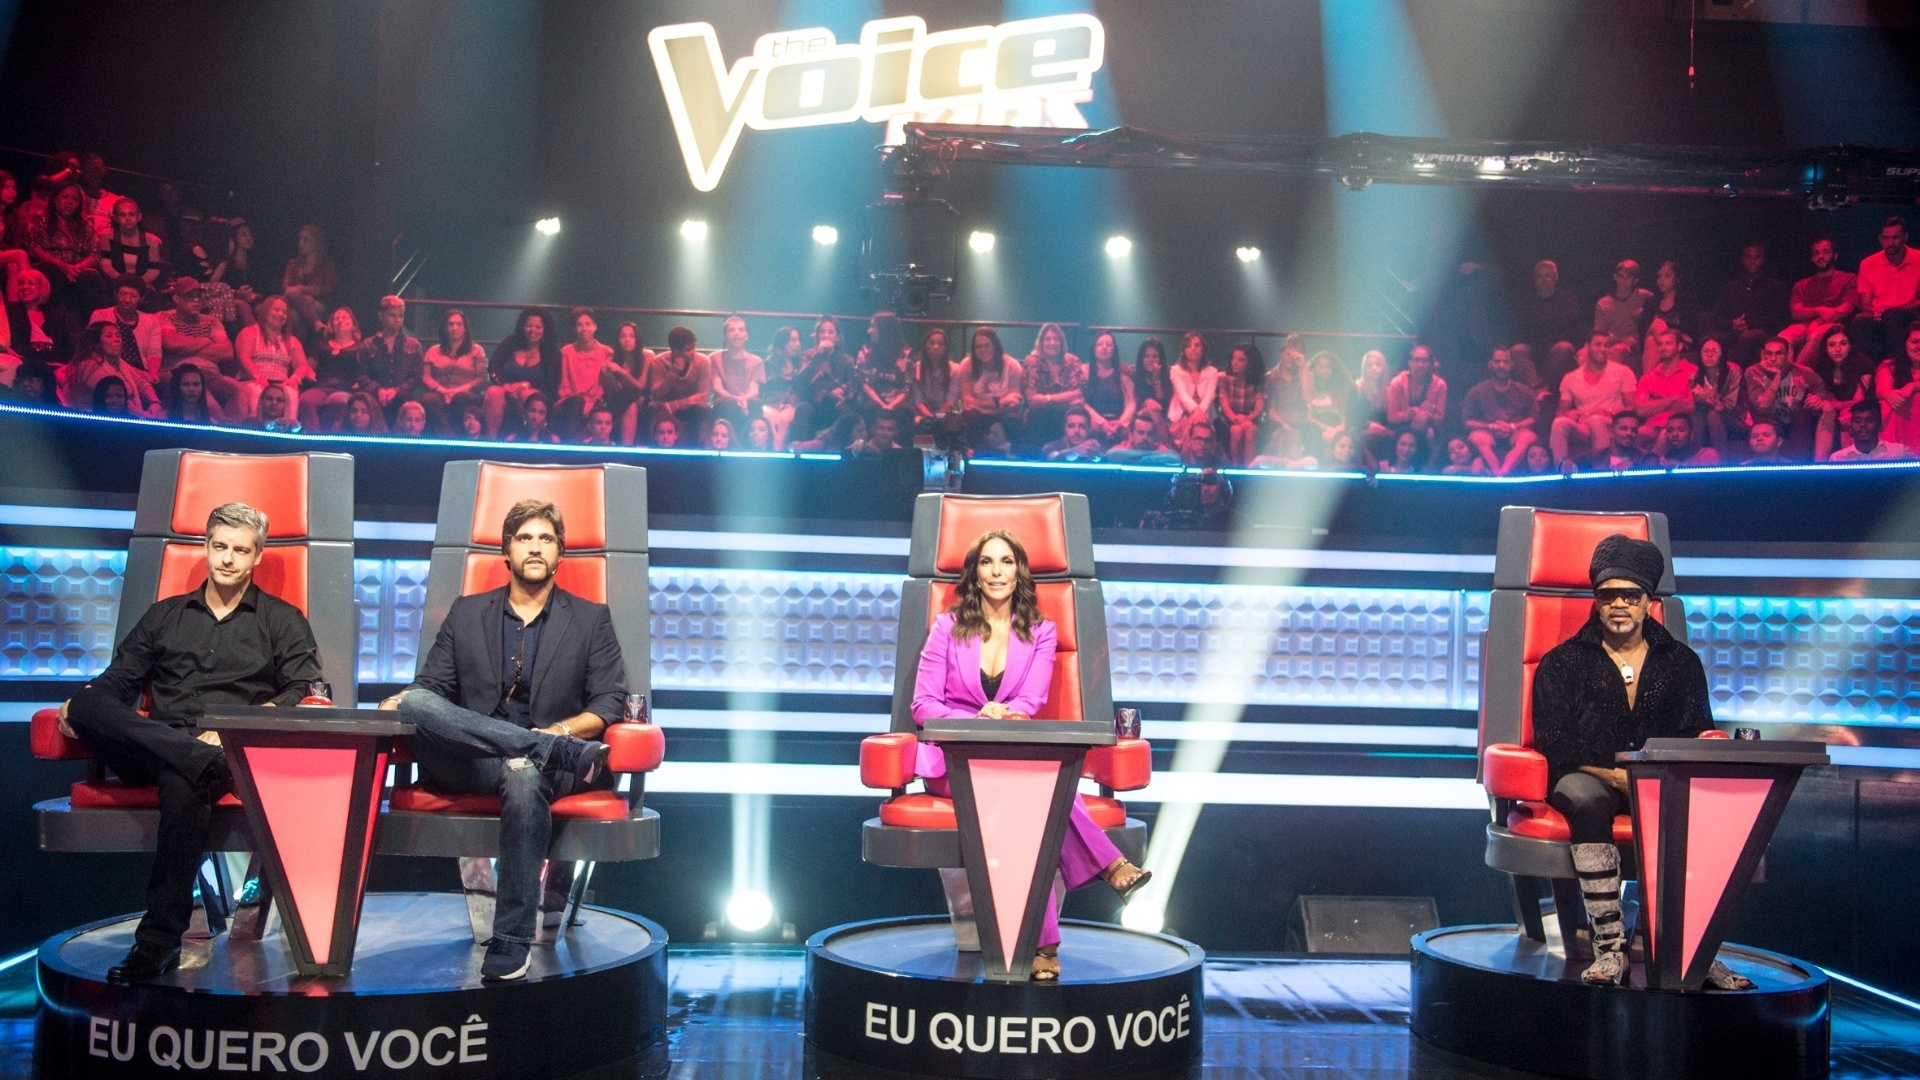 Victor & Leo, Ivete Sangalo e Carlinhos Brown sentam na cadeira do